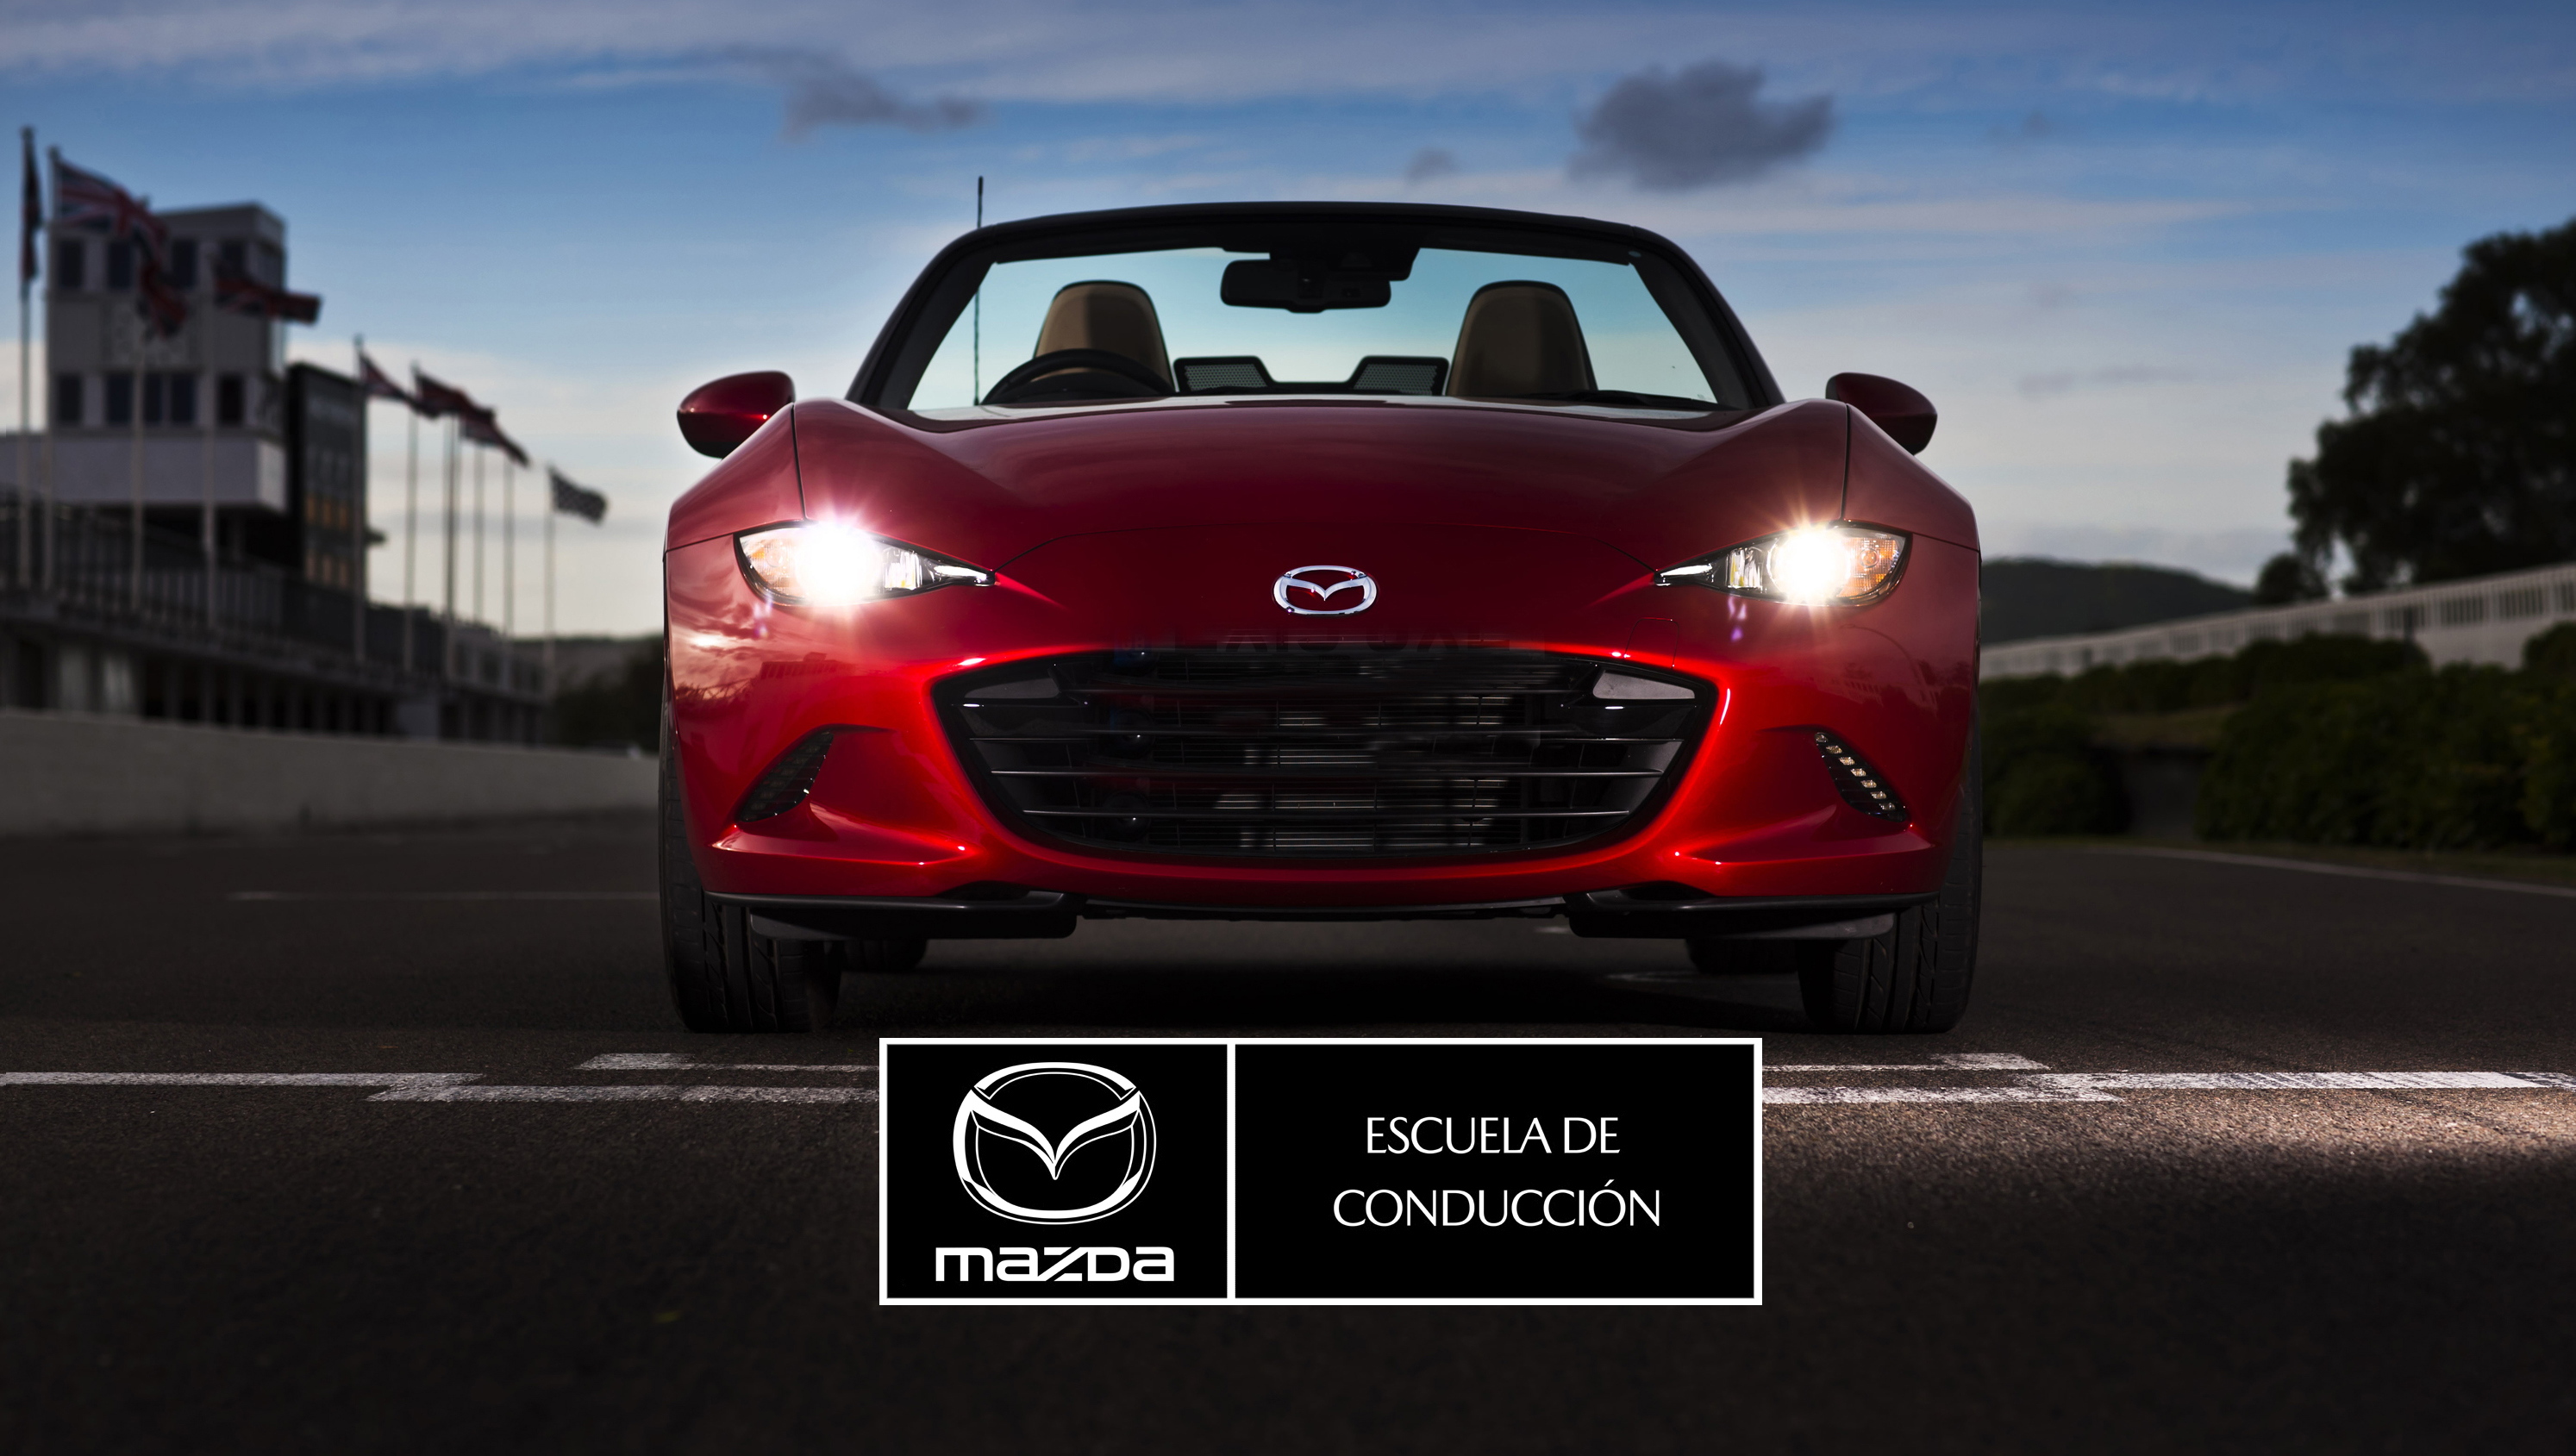 mazda_escuela_conduccion